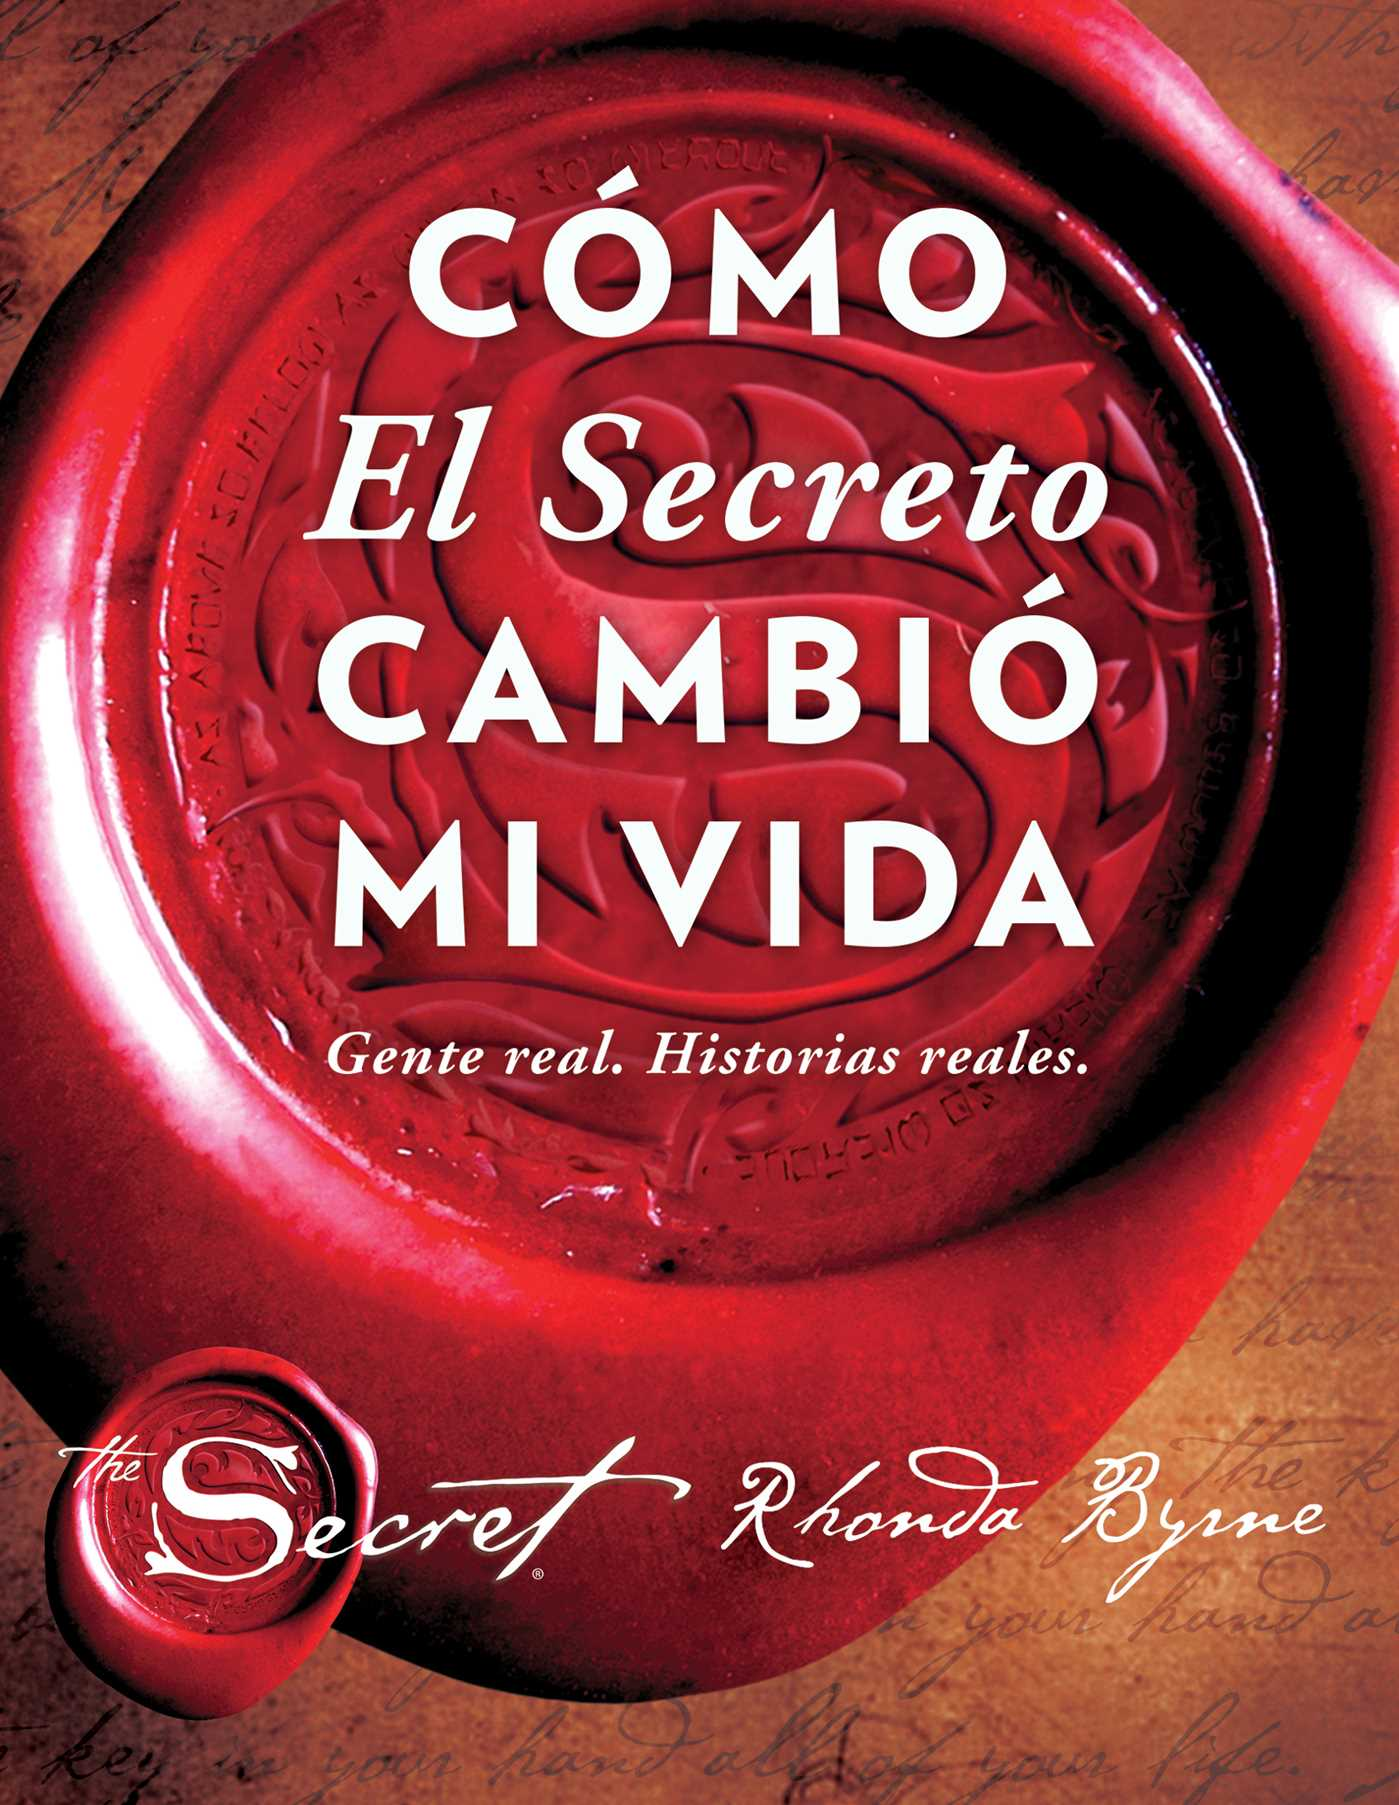 El Secreto Libro Descargar Gratis Cómo El Secreto Cambió Mi Vida How The Secret Changed My Life